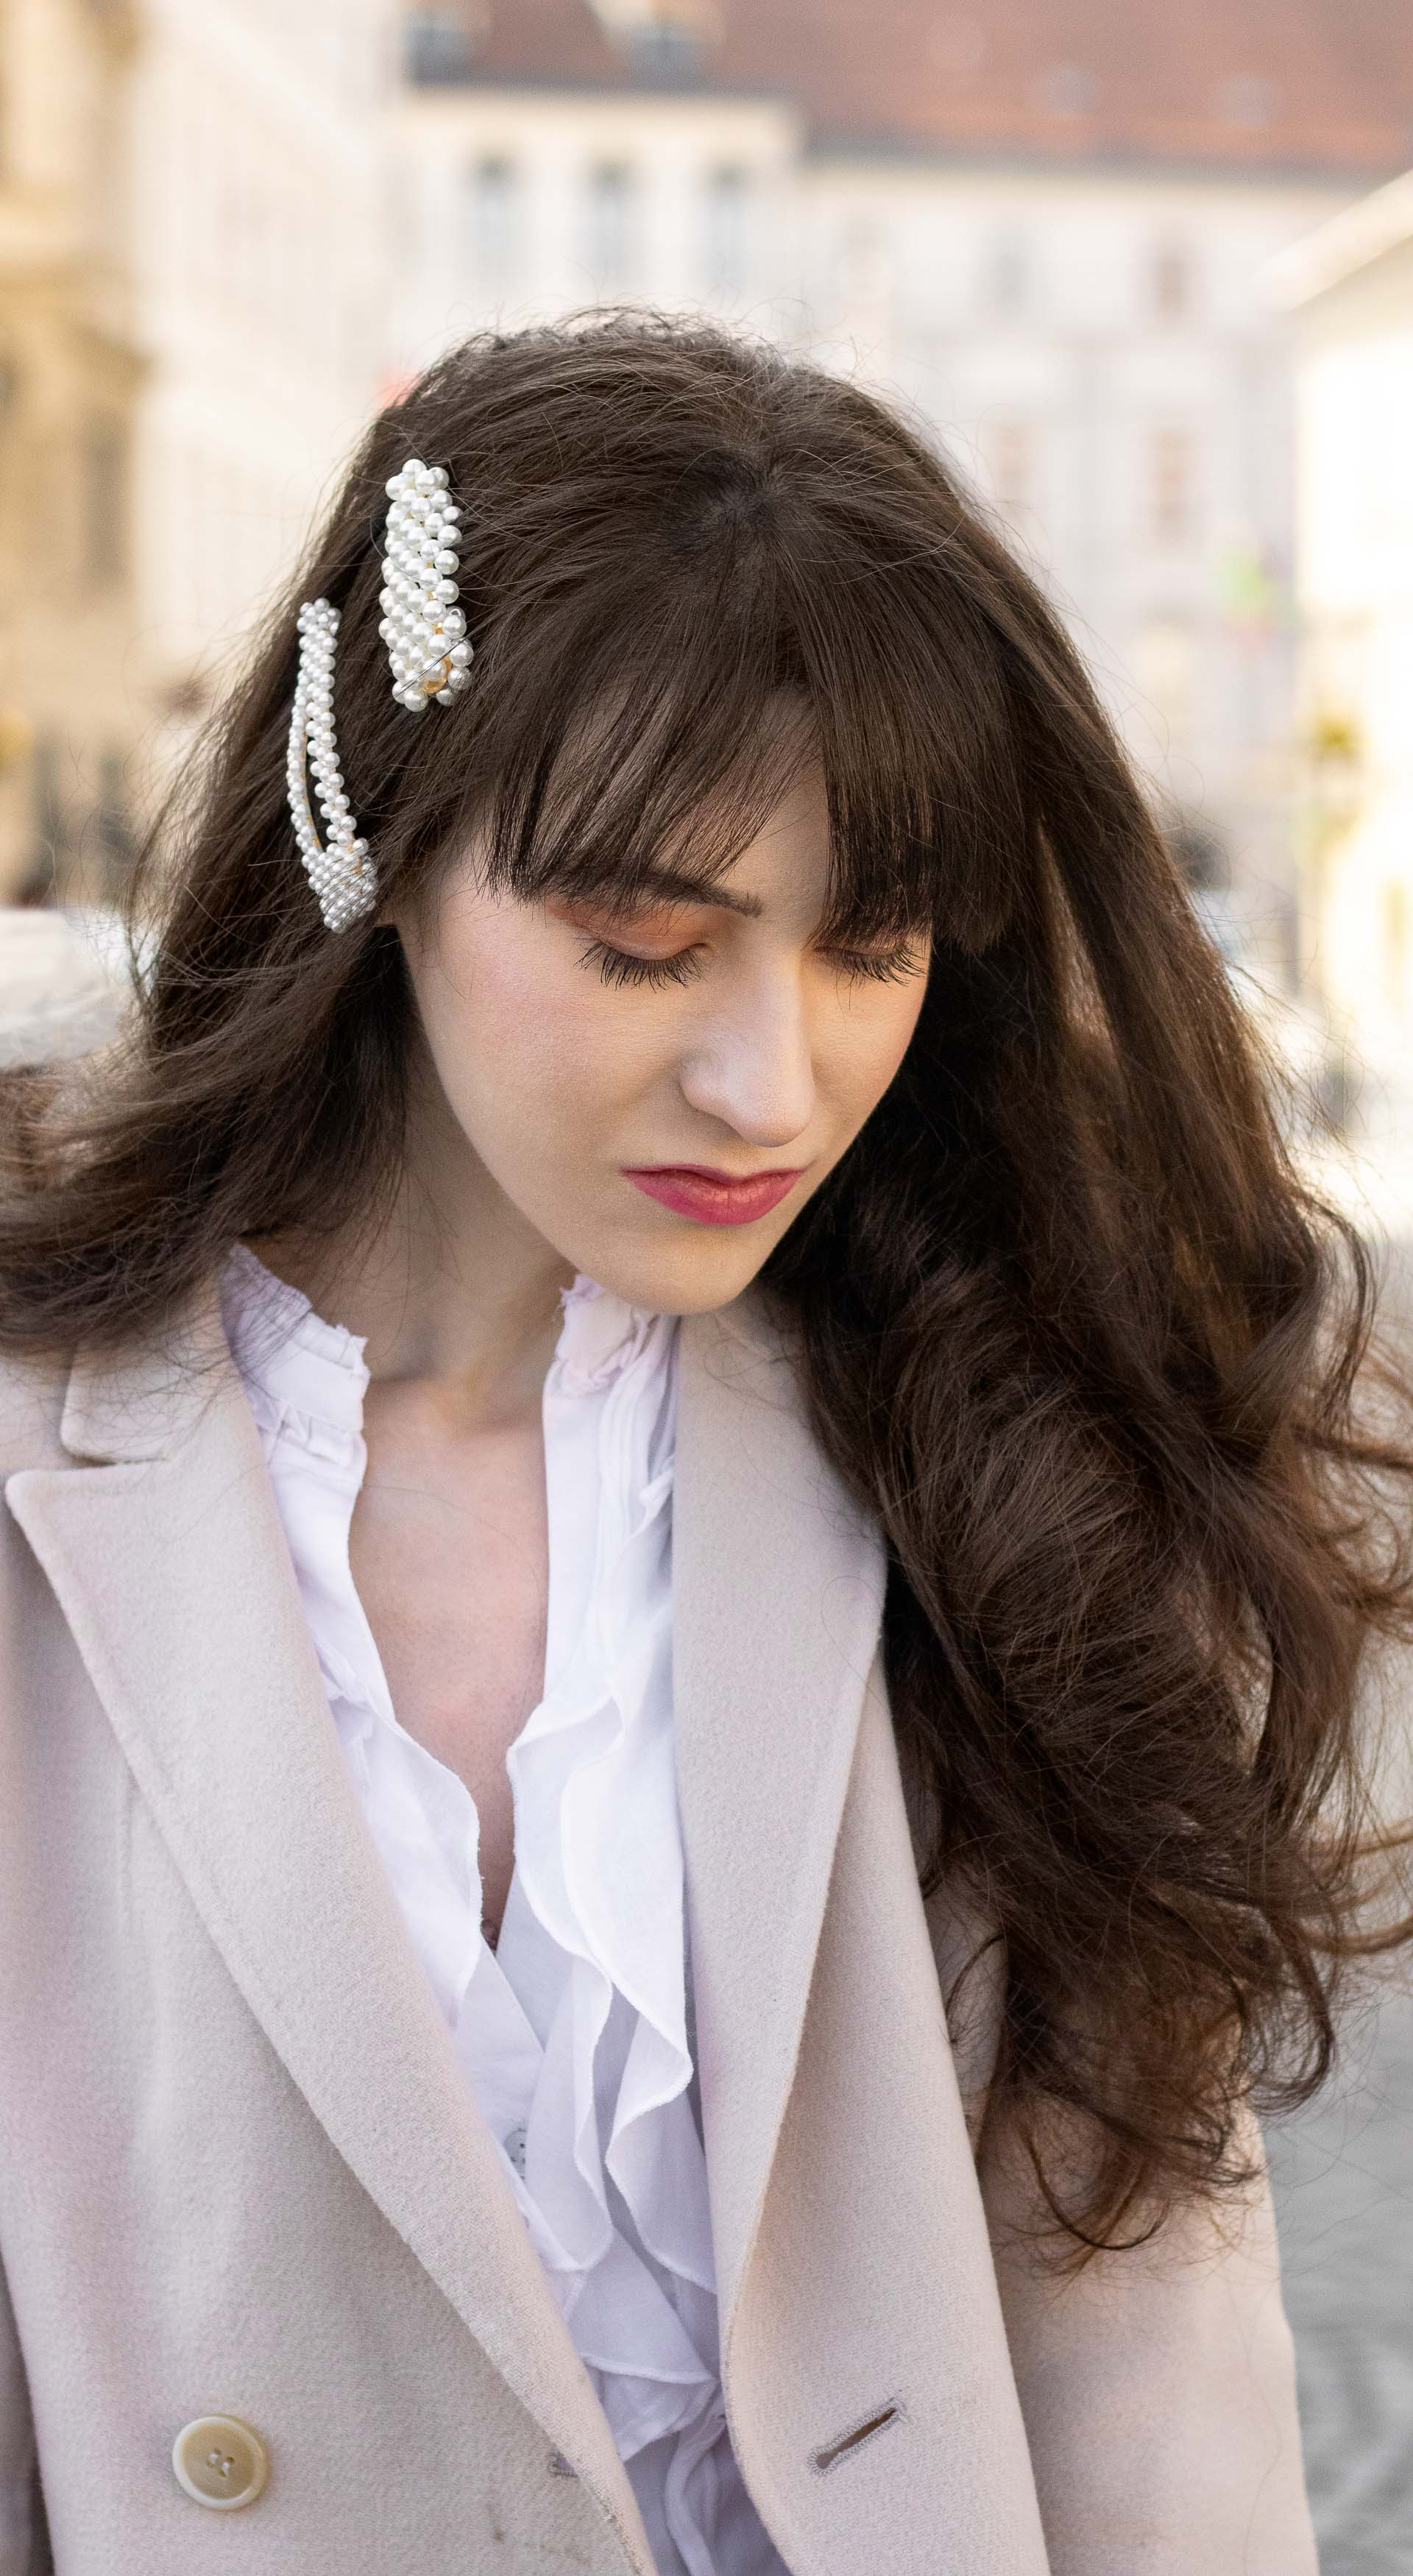 Brunette from Wall Street hair trends pearl hairpins